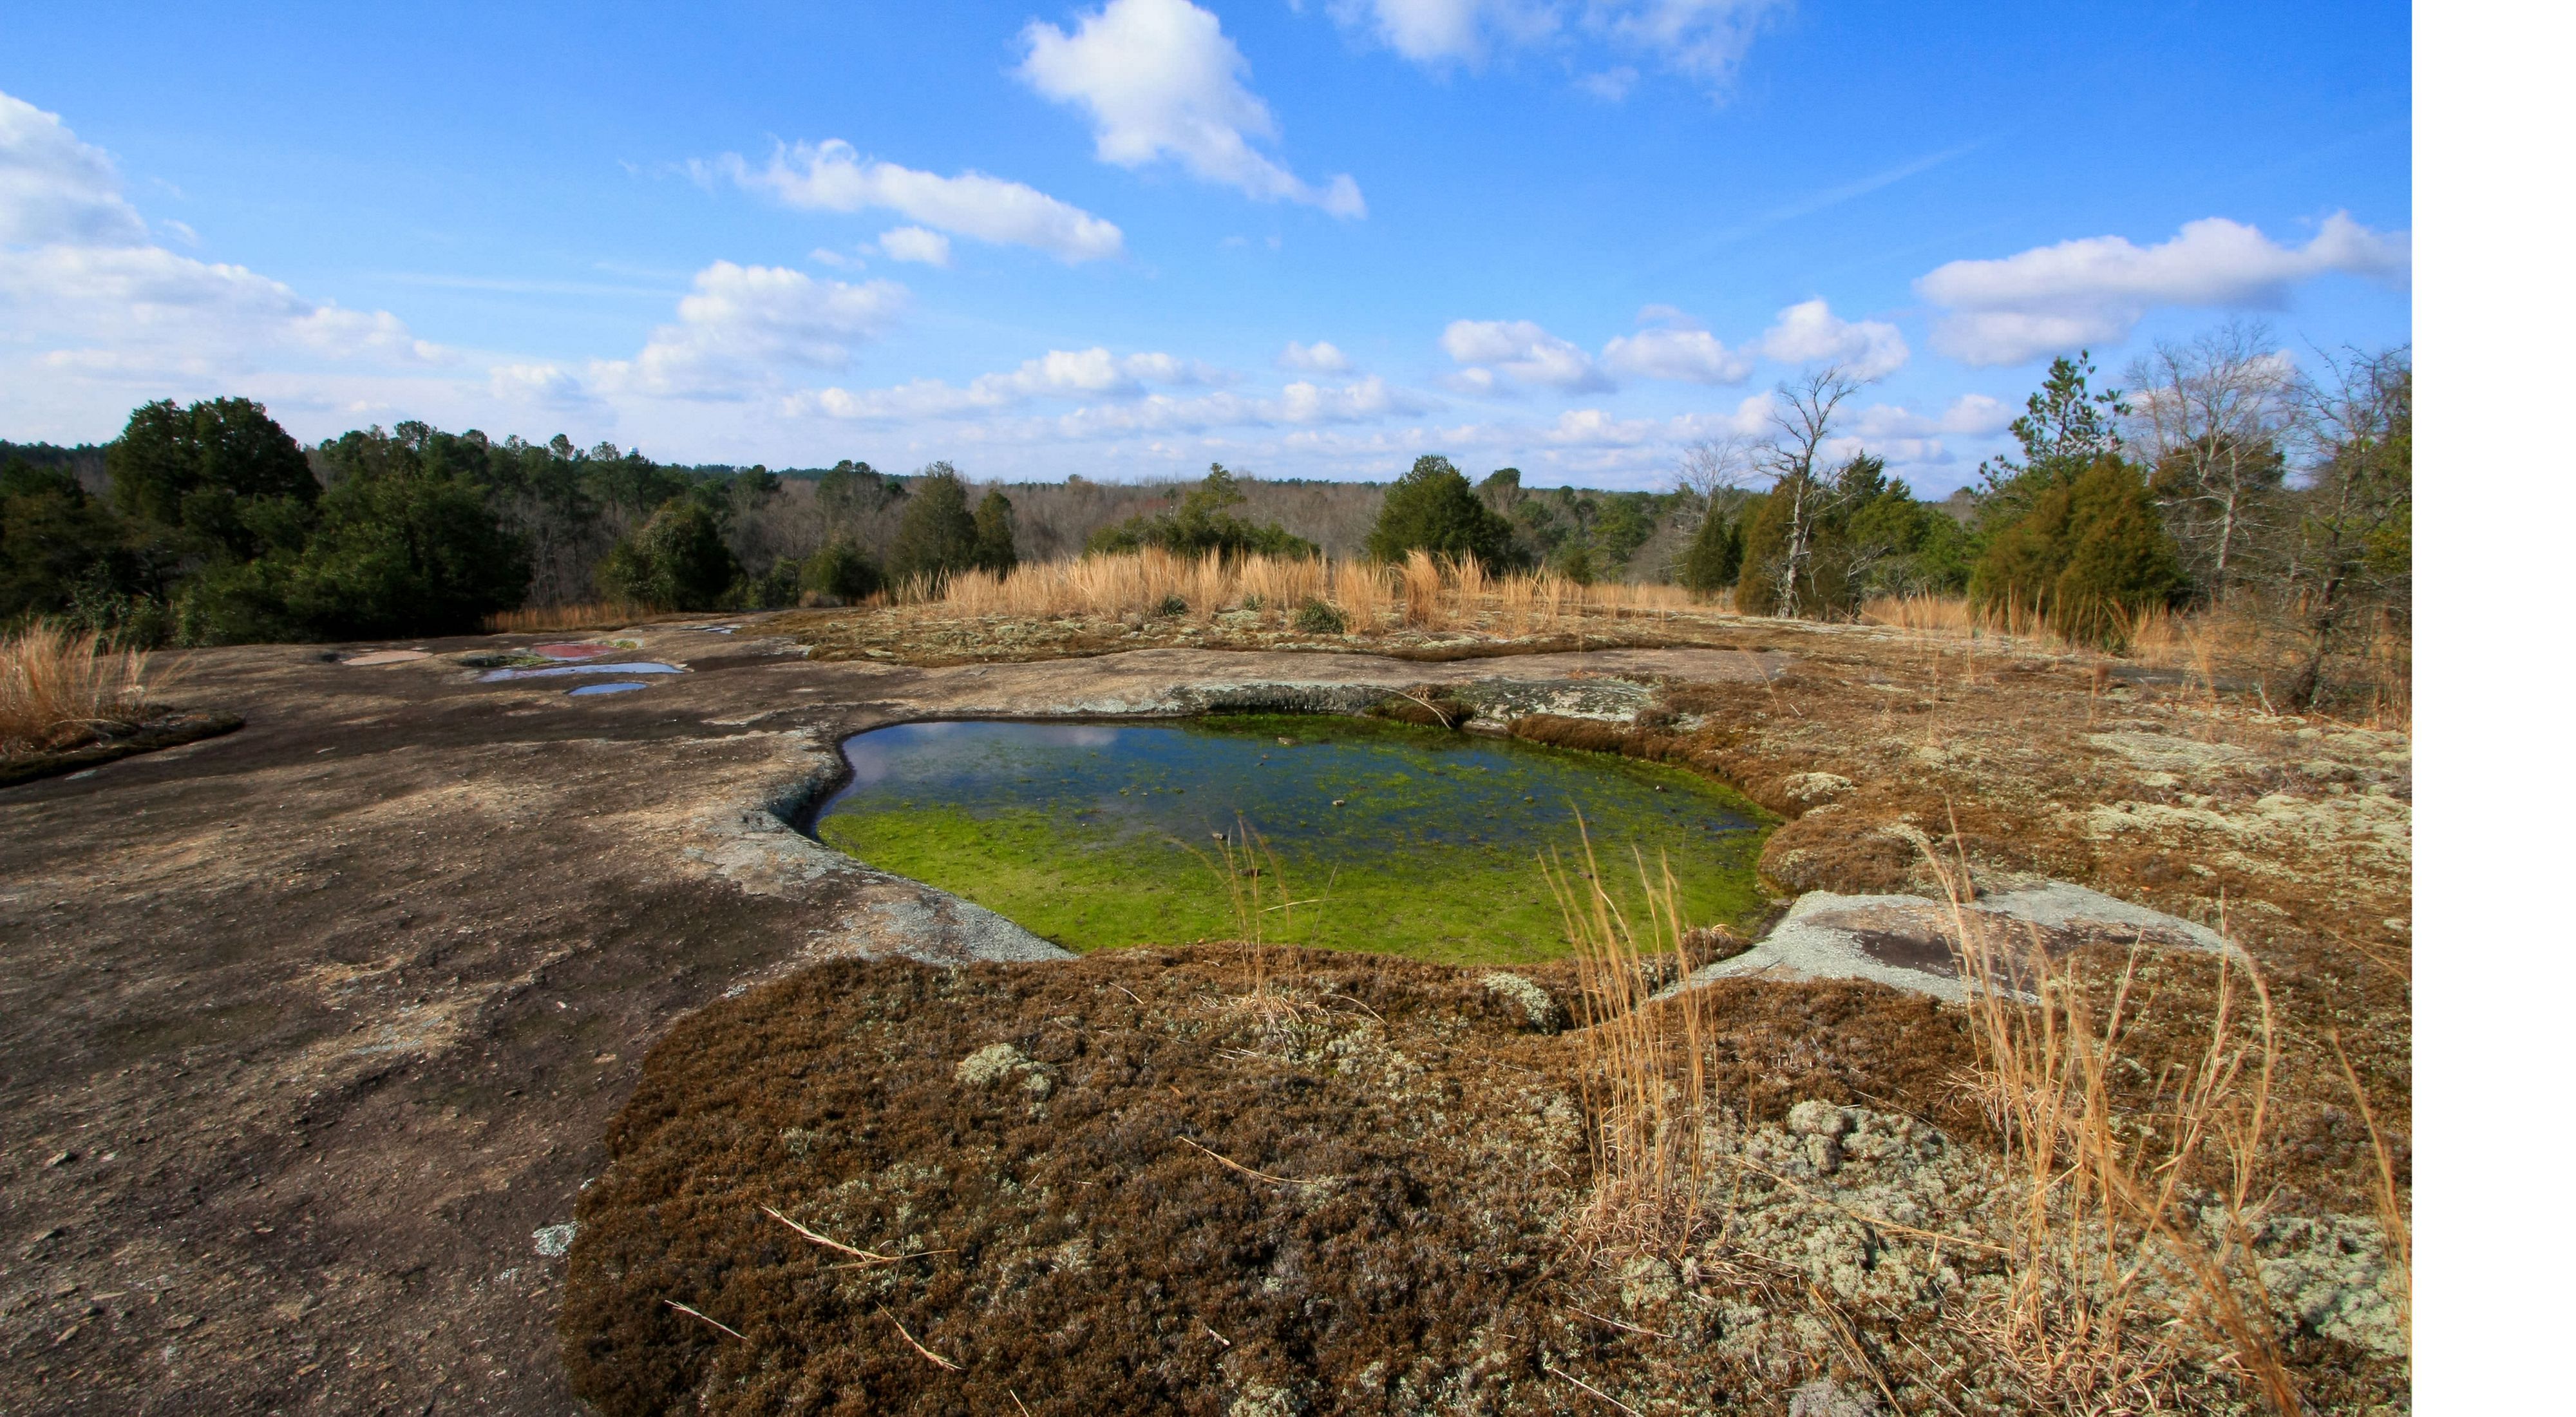 This is the Merlin's grass pool, surrounded by quillwort — a federally endangered plant endemic to GA and related to ferns.